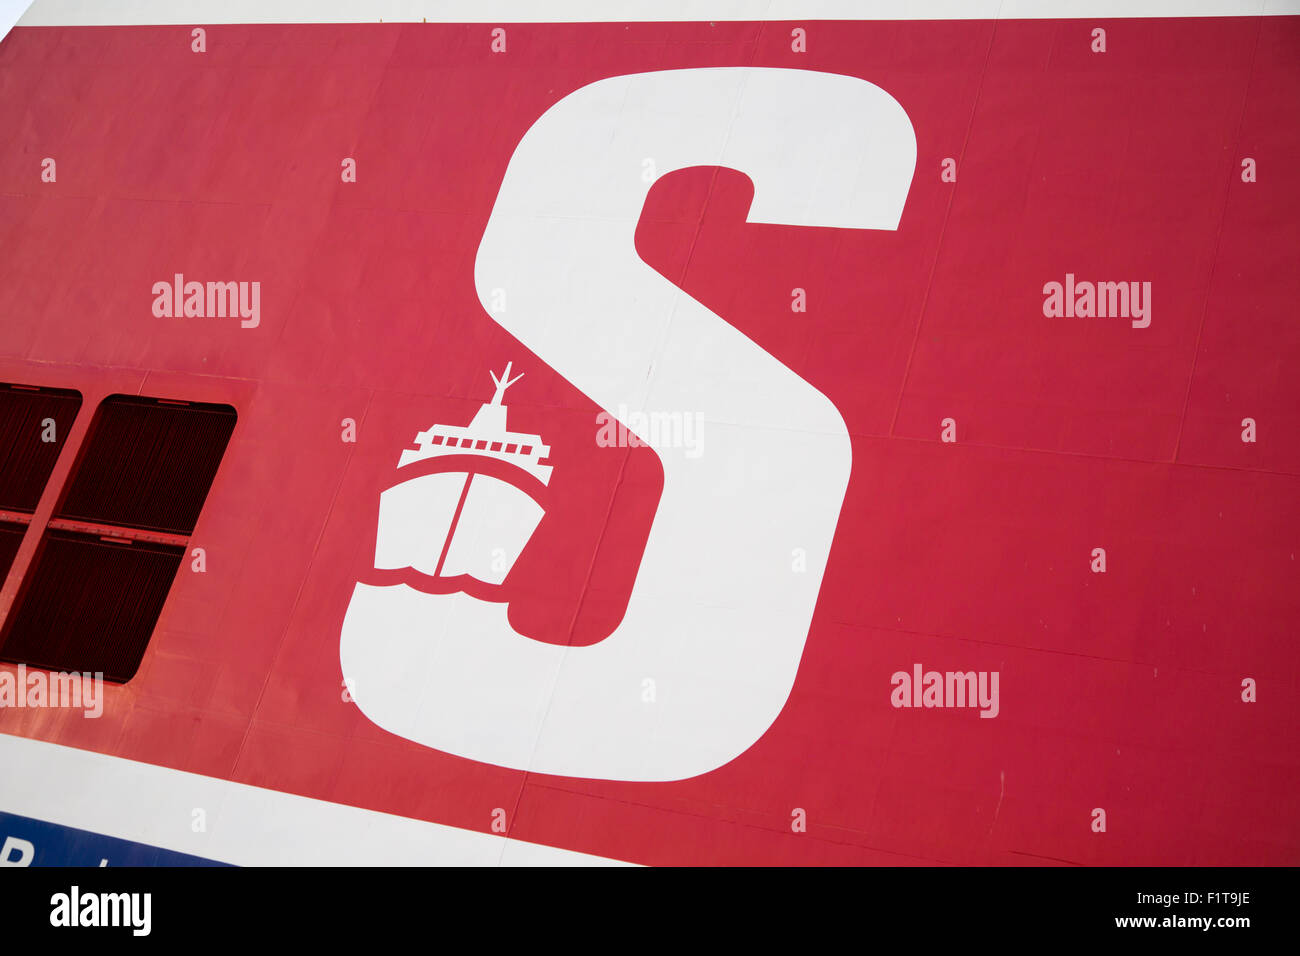 Large capital letter S on ship funnel, Stena Ferry, Hook of Holland to Harwich service, Netherlands to UK - Stock Image